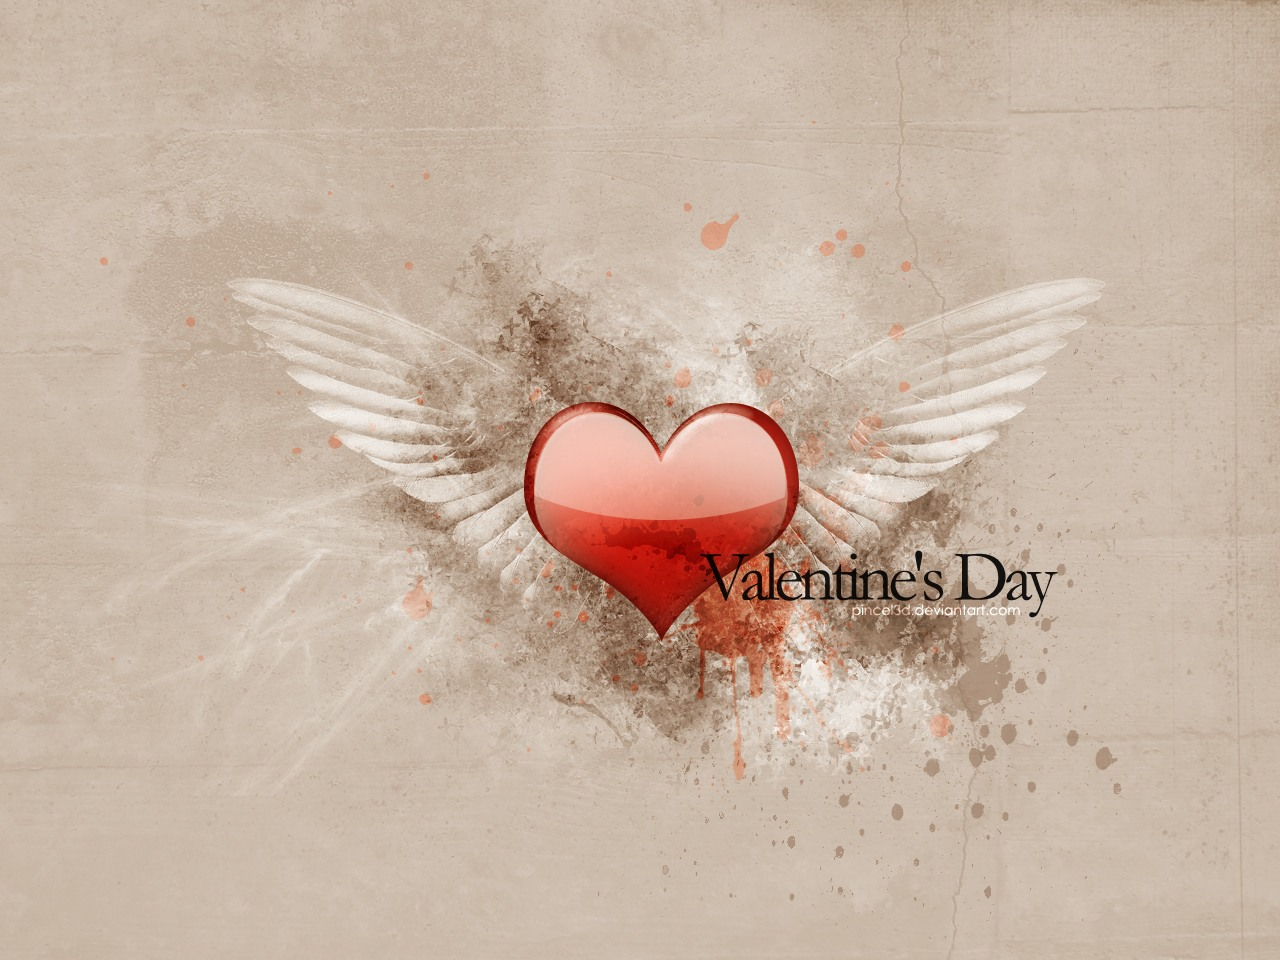 valentines day wallpaper 01 valentines day wallpaper 02 valentines day 1280x960